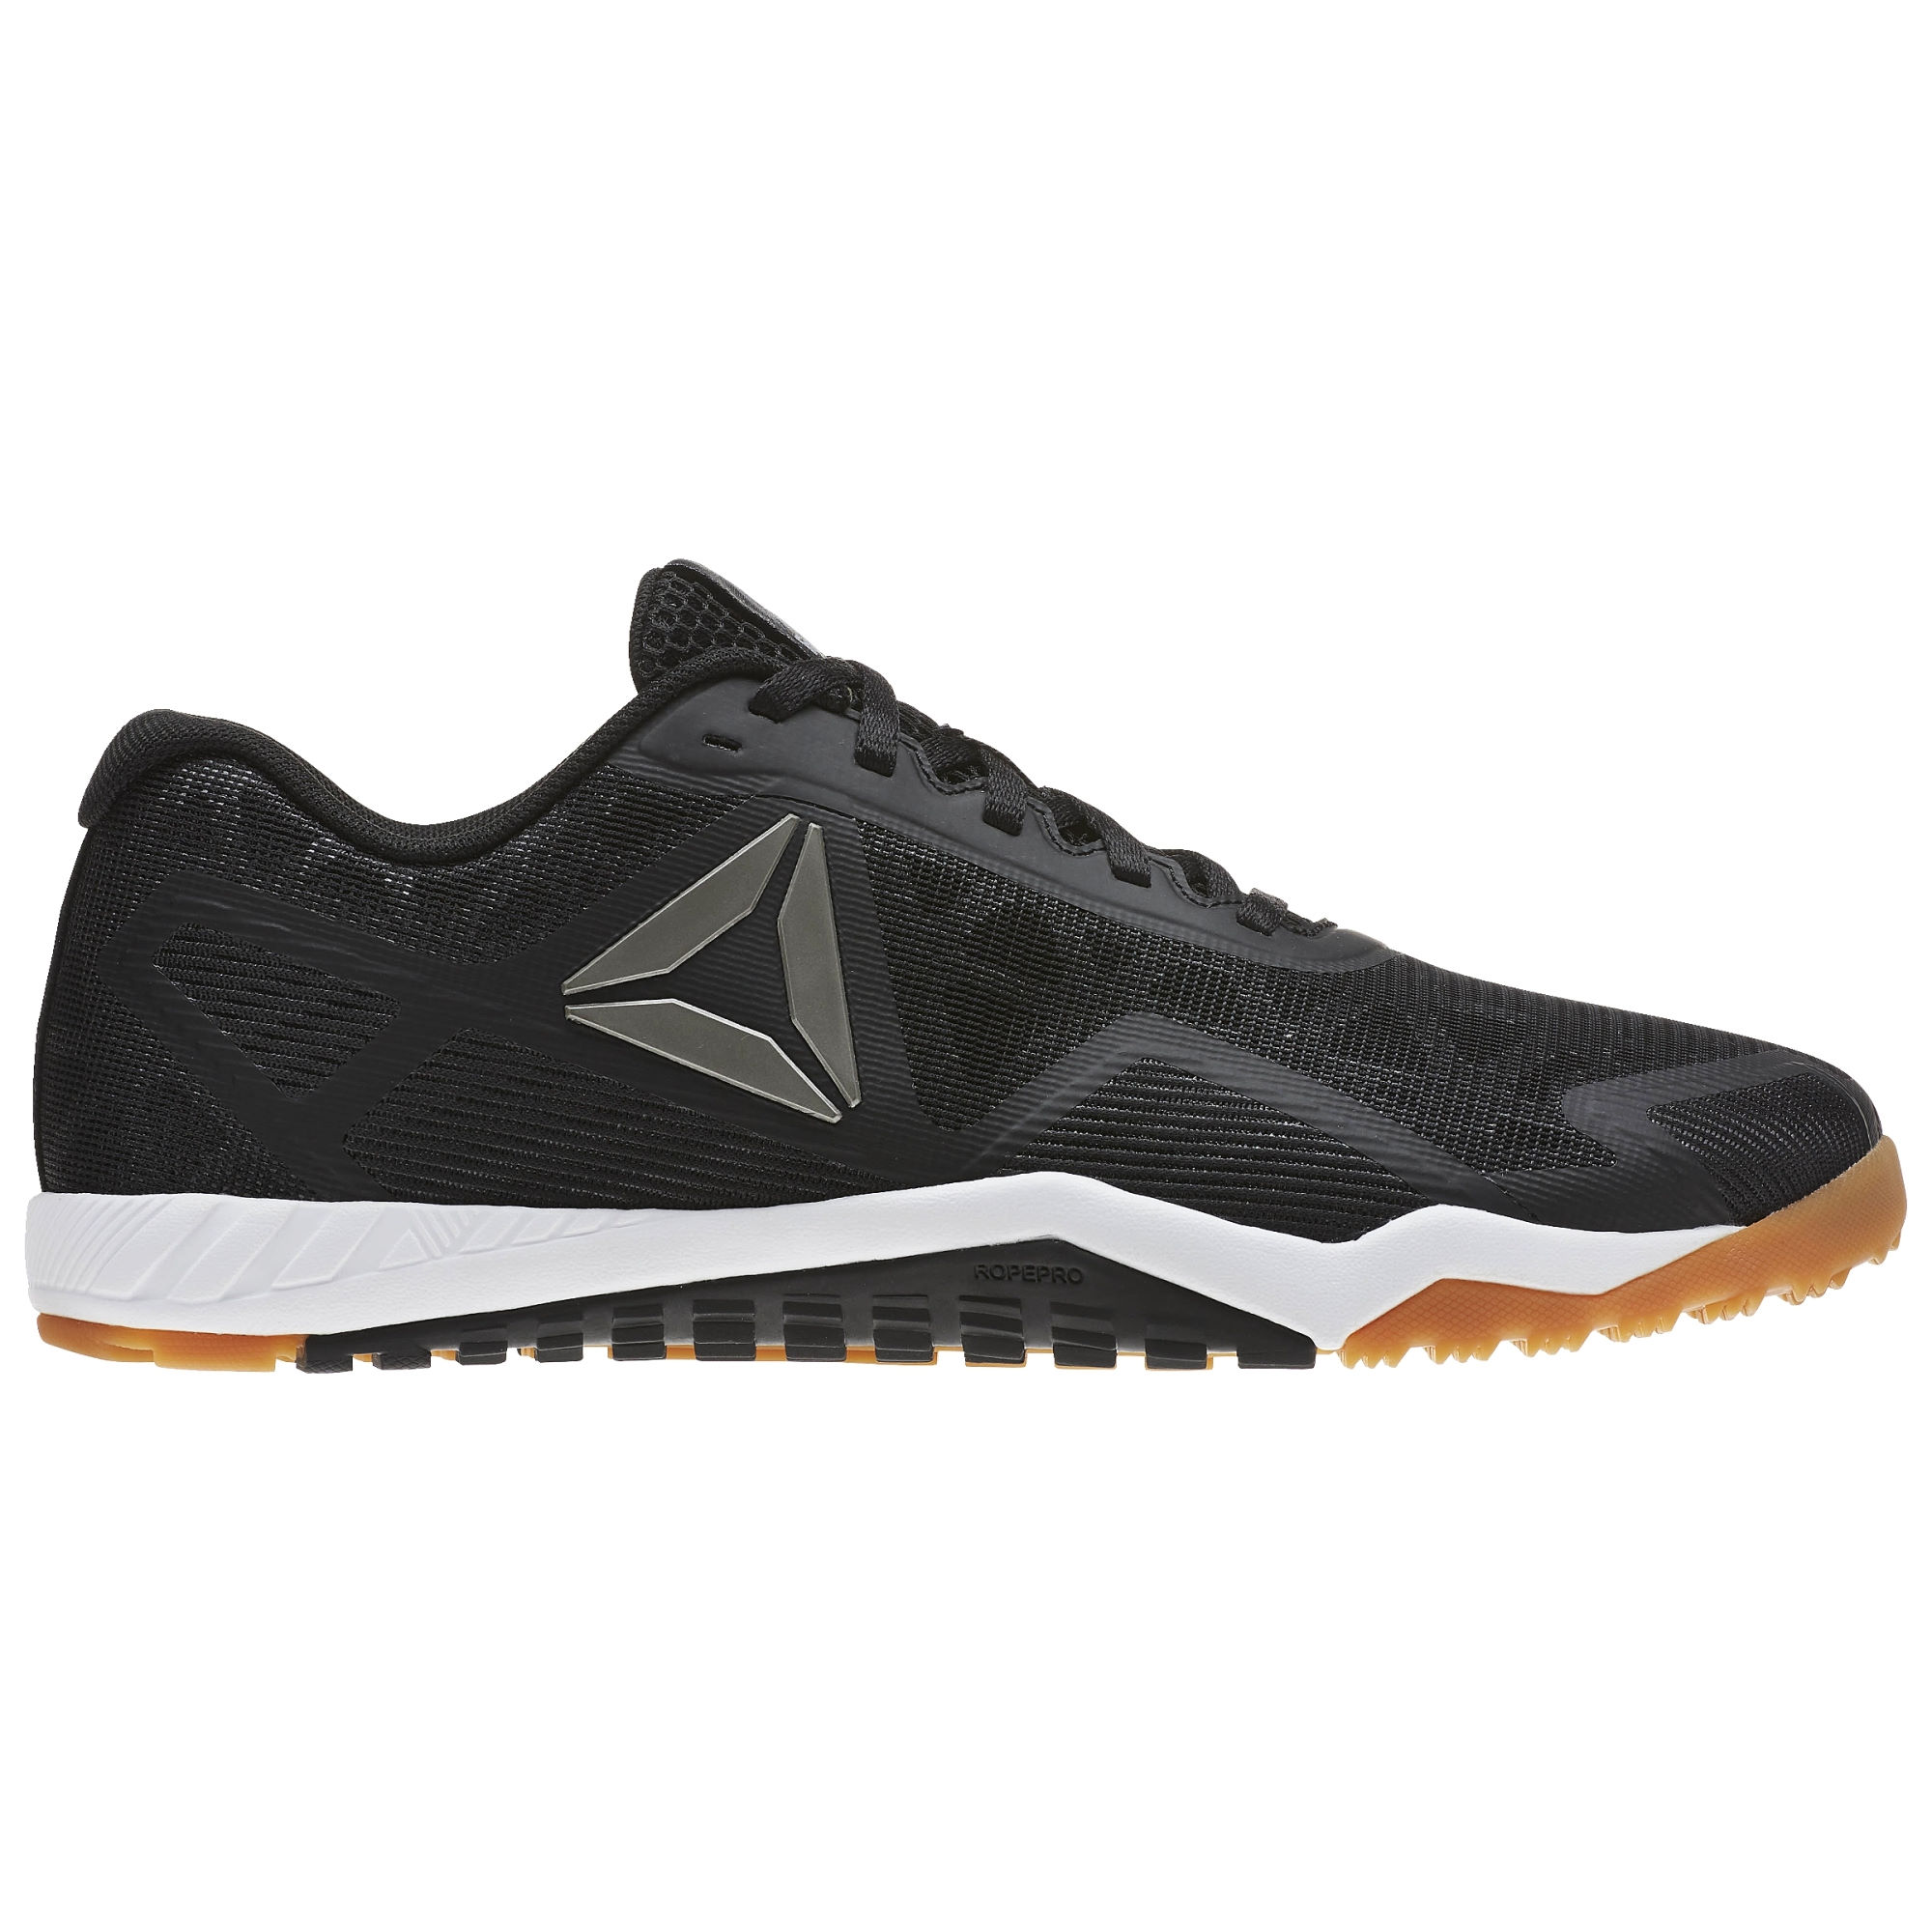 Reebok Security Shoes